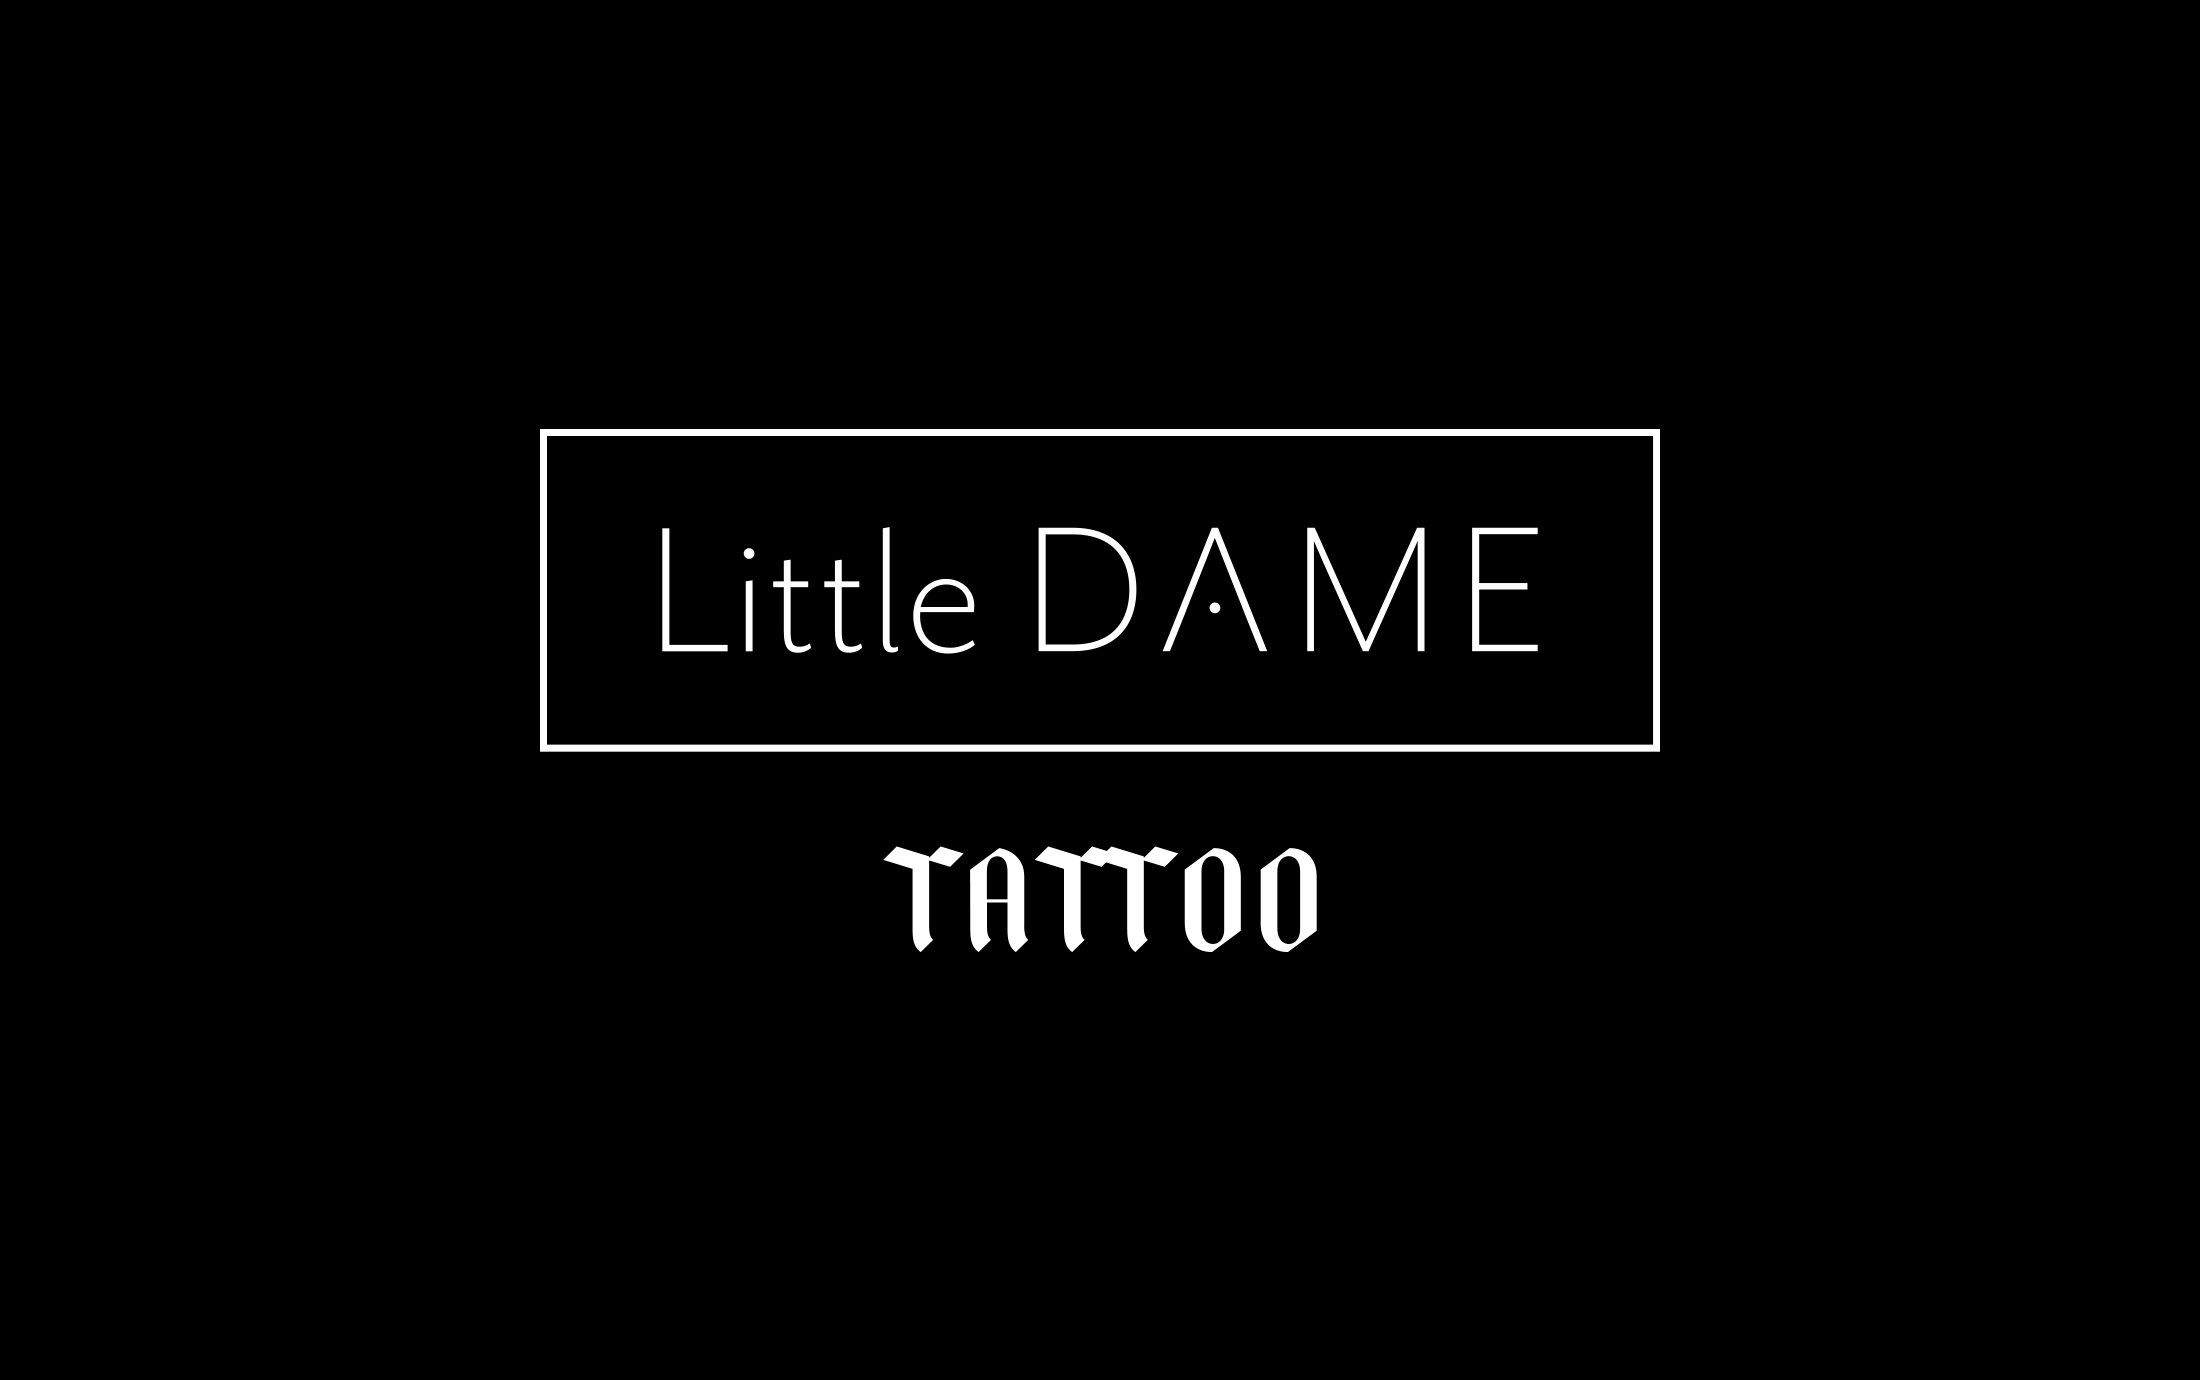 Logo for the New Tattoo Side of the Business—Little Dame Tattoo